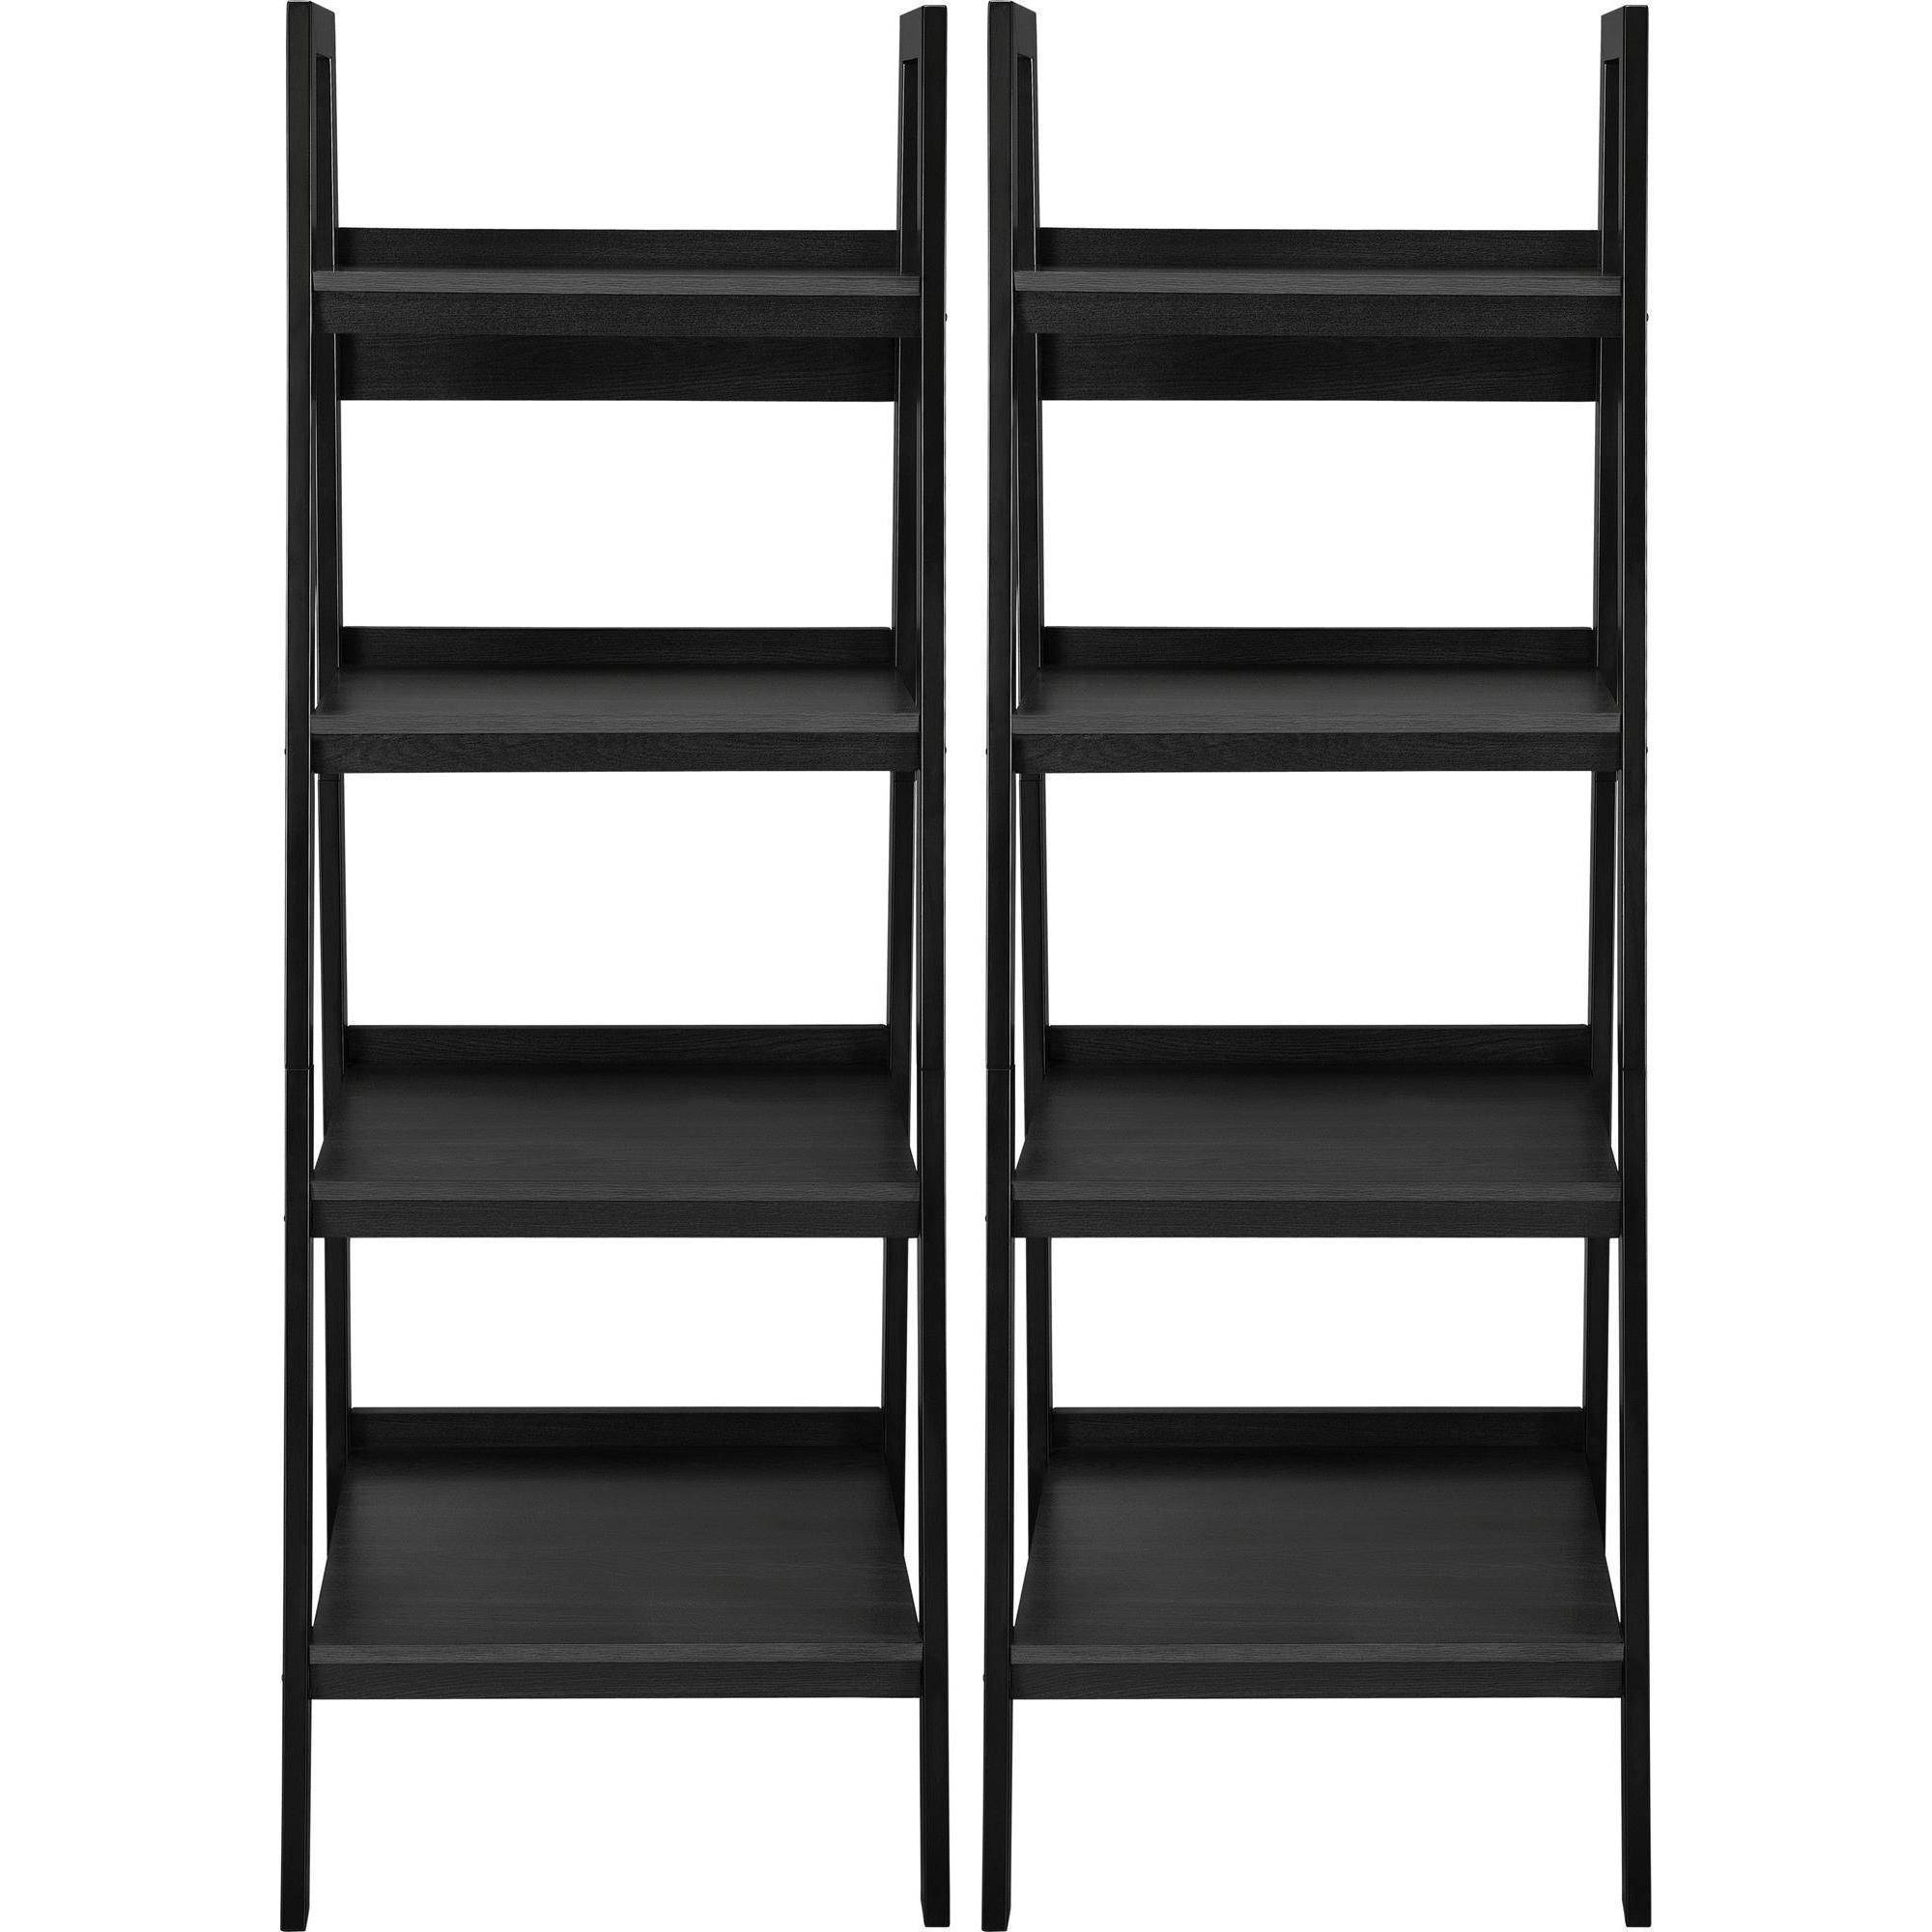 2018 Black Bookcases With Regard To Altra Metal Ladder Bookcase, Set Of 2, Black Shelves Shelf Decor (View 14 of 15)